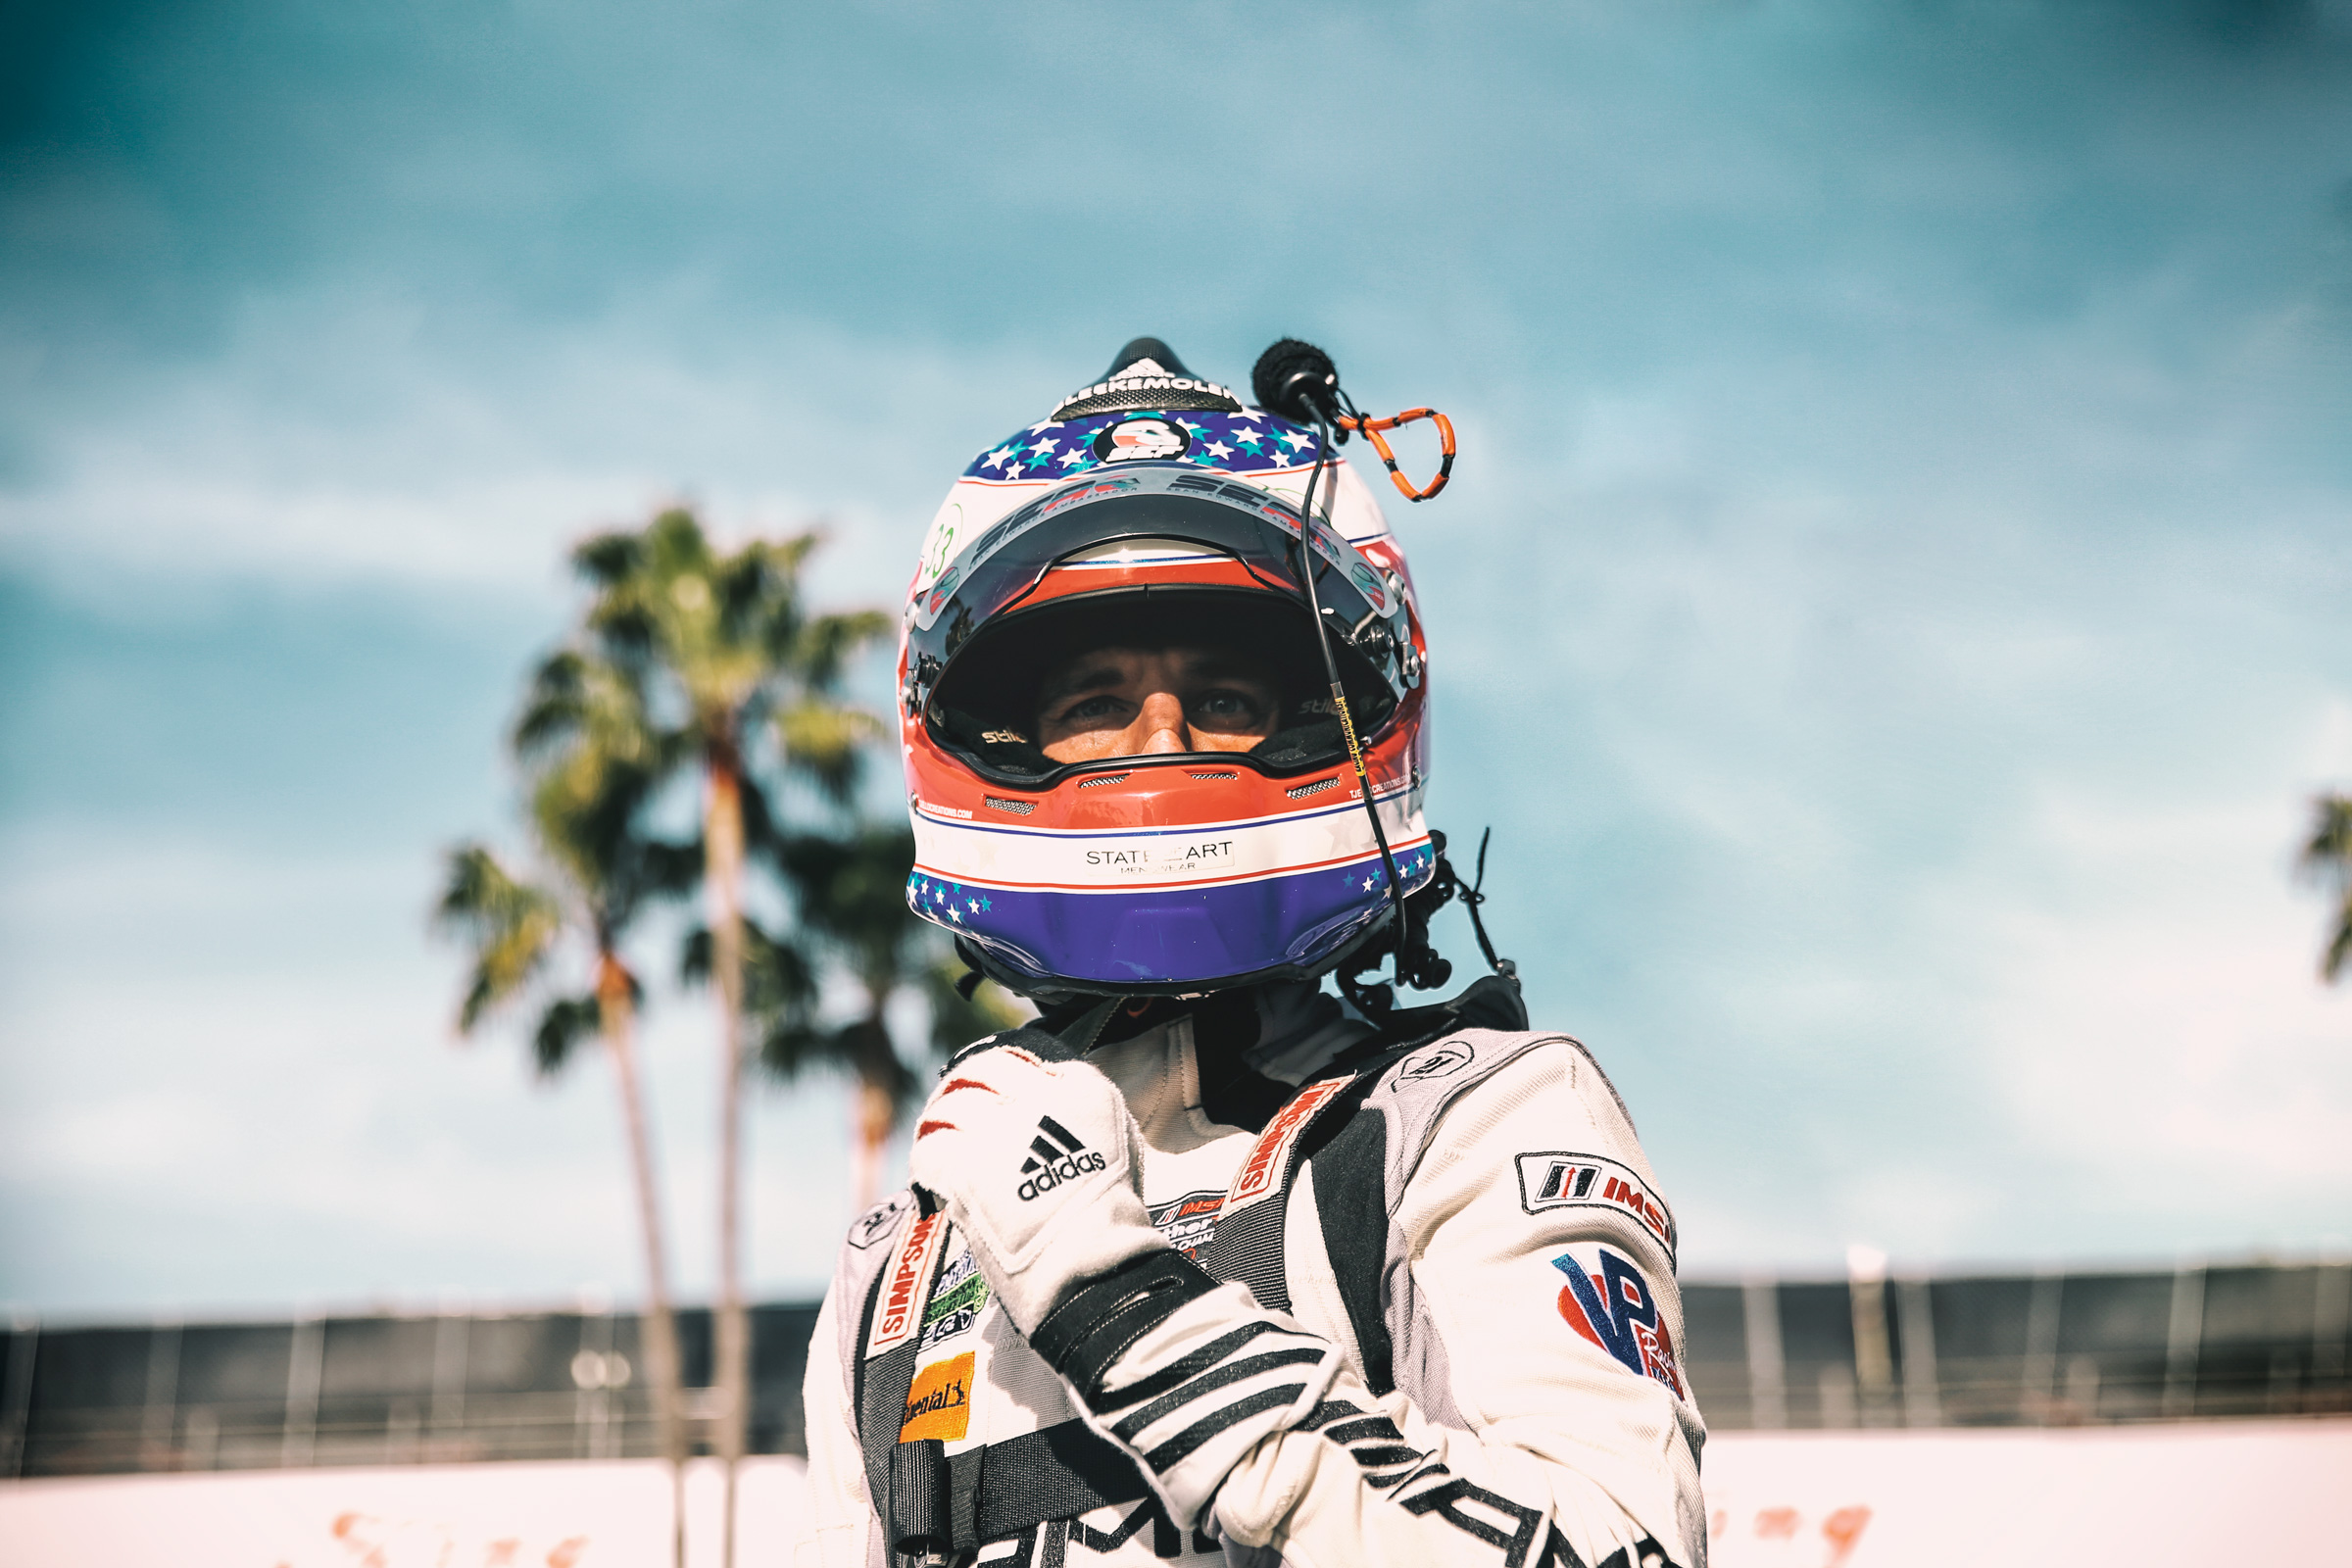 Portrait von Jeroen Bleekemolen mit Helm in der Boxengasse von Long Beach, Los Angeles. Portrait with helmet of Jeroen Bleekemolen in the pitlane of Long Beach, Los Angeles.